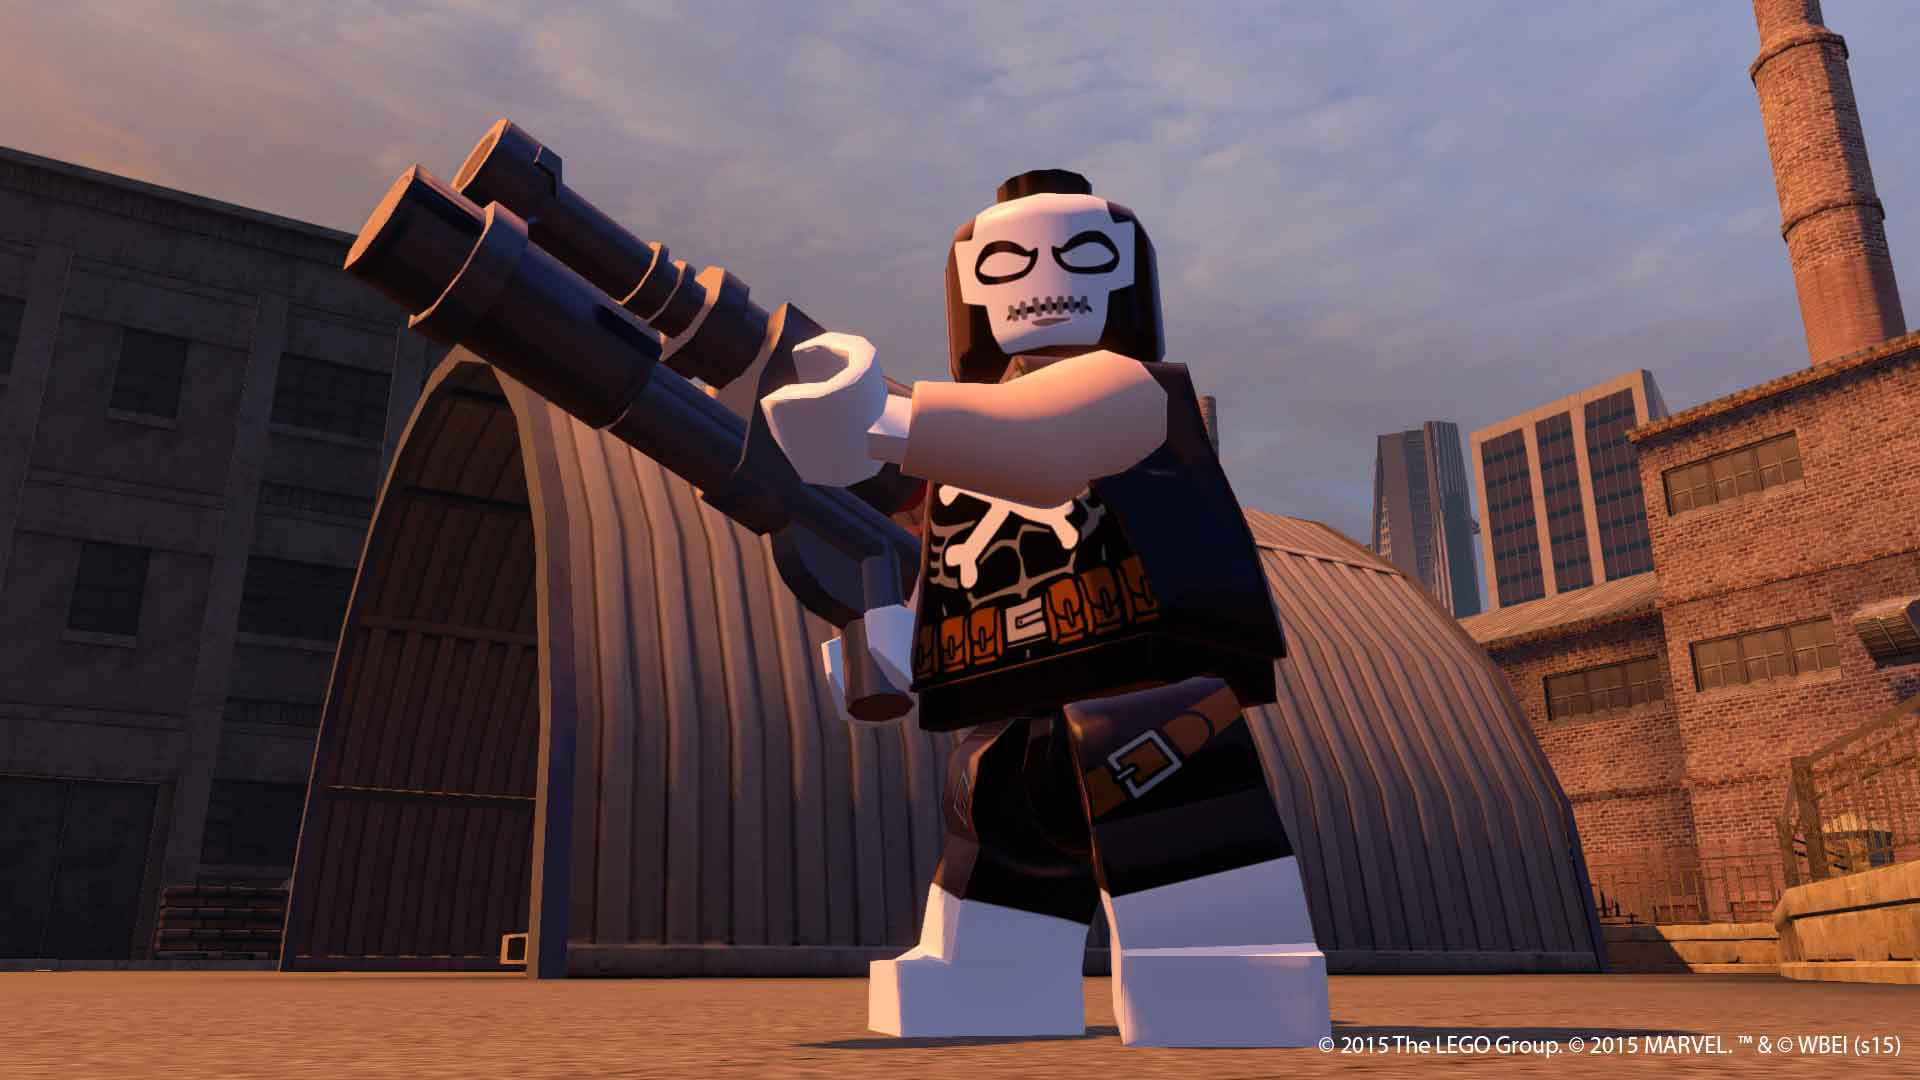 LEGO Marvel Avengers Game Gets These New Characters And Stan Lee Love TheHDRoom